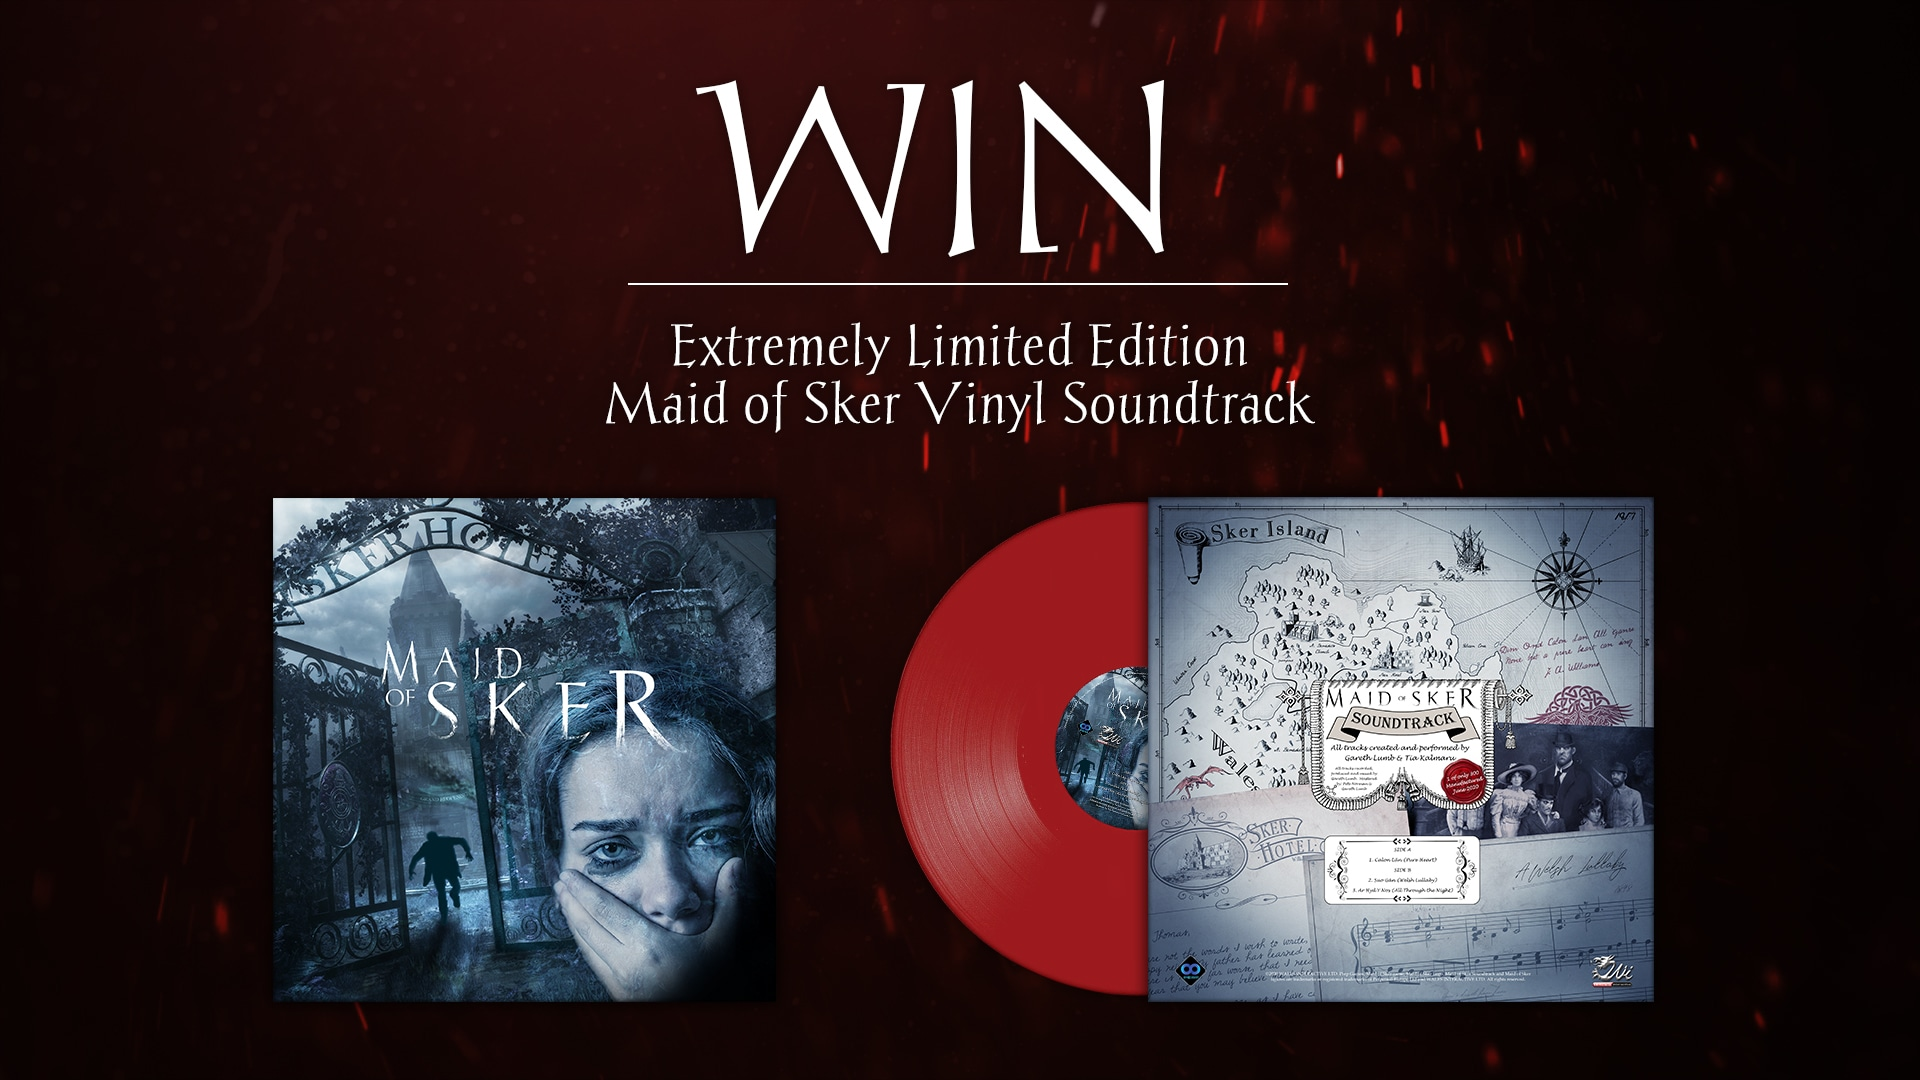 Extremely Limited Edition Maid of Sker Game Vinyl Soundtrack Giveaway Giveaway Image